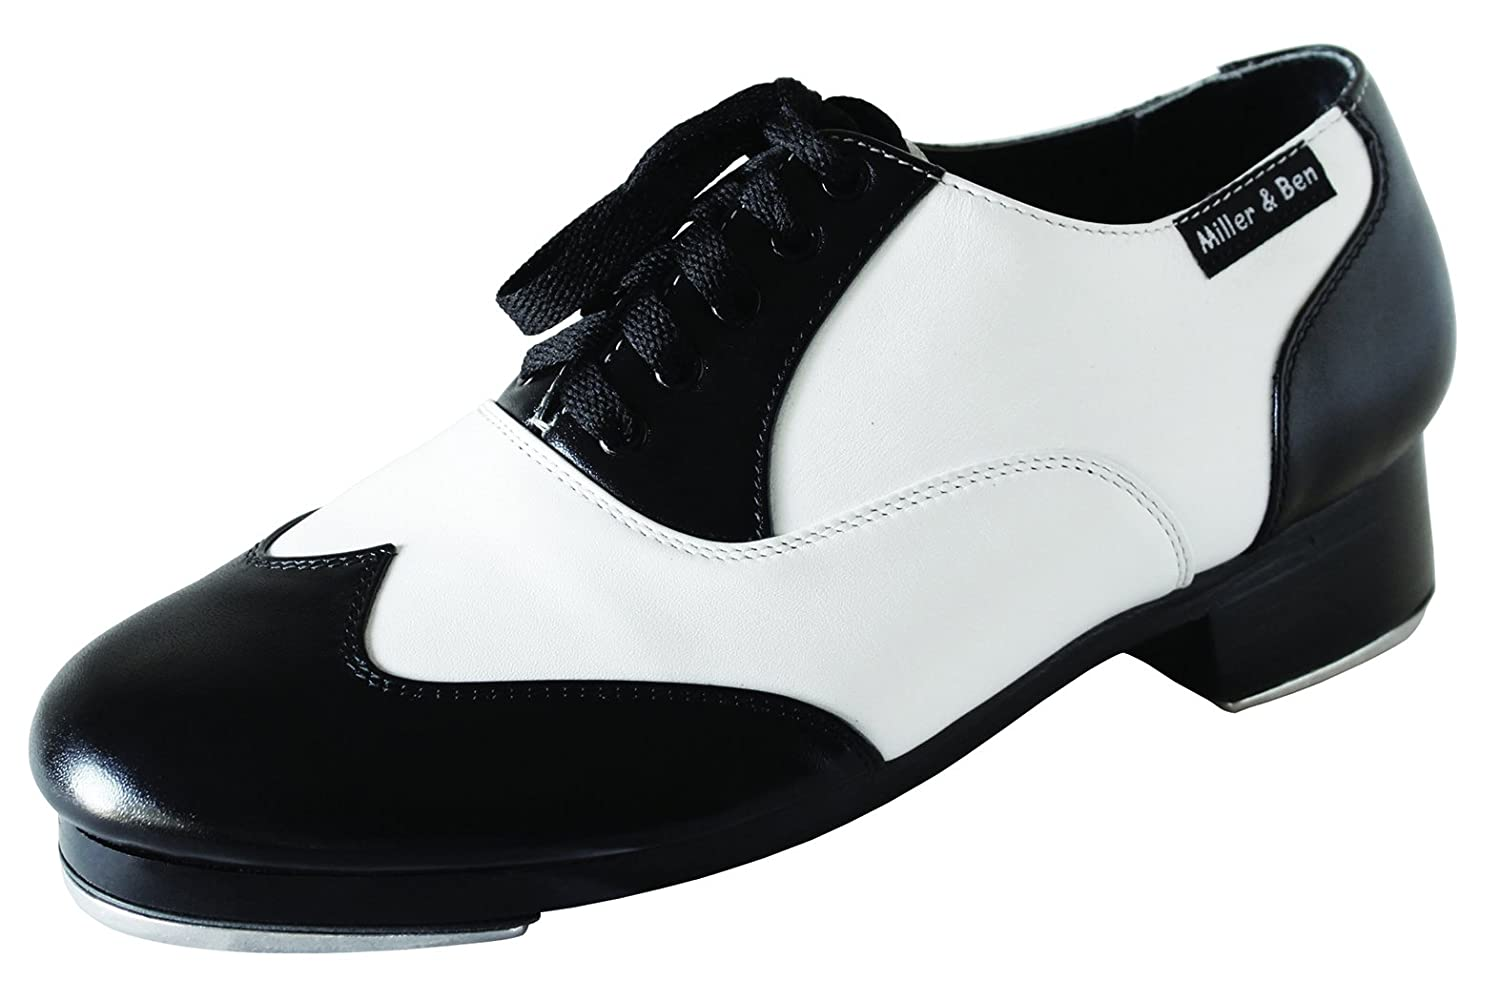 1950s Style Shoes | Heels, Flats, Saddle Shoes Miller & Ben Tap Shoes Jazz-Tap Master Black & White - STANDARD SIZES $285.00 AT vintagedancer.com